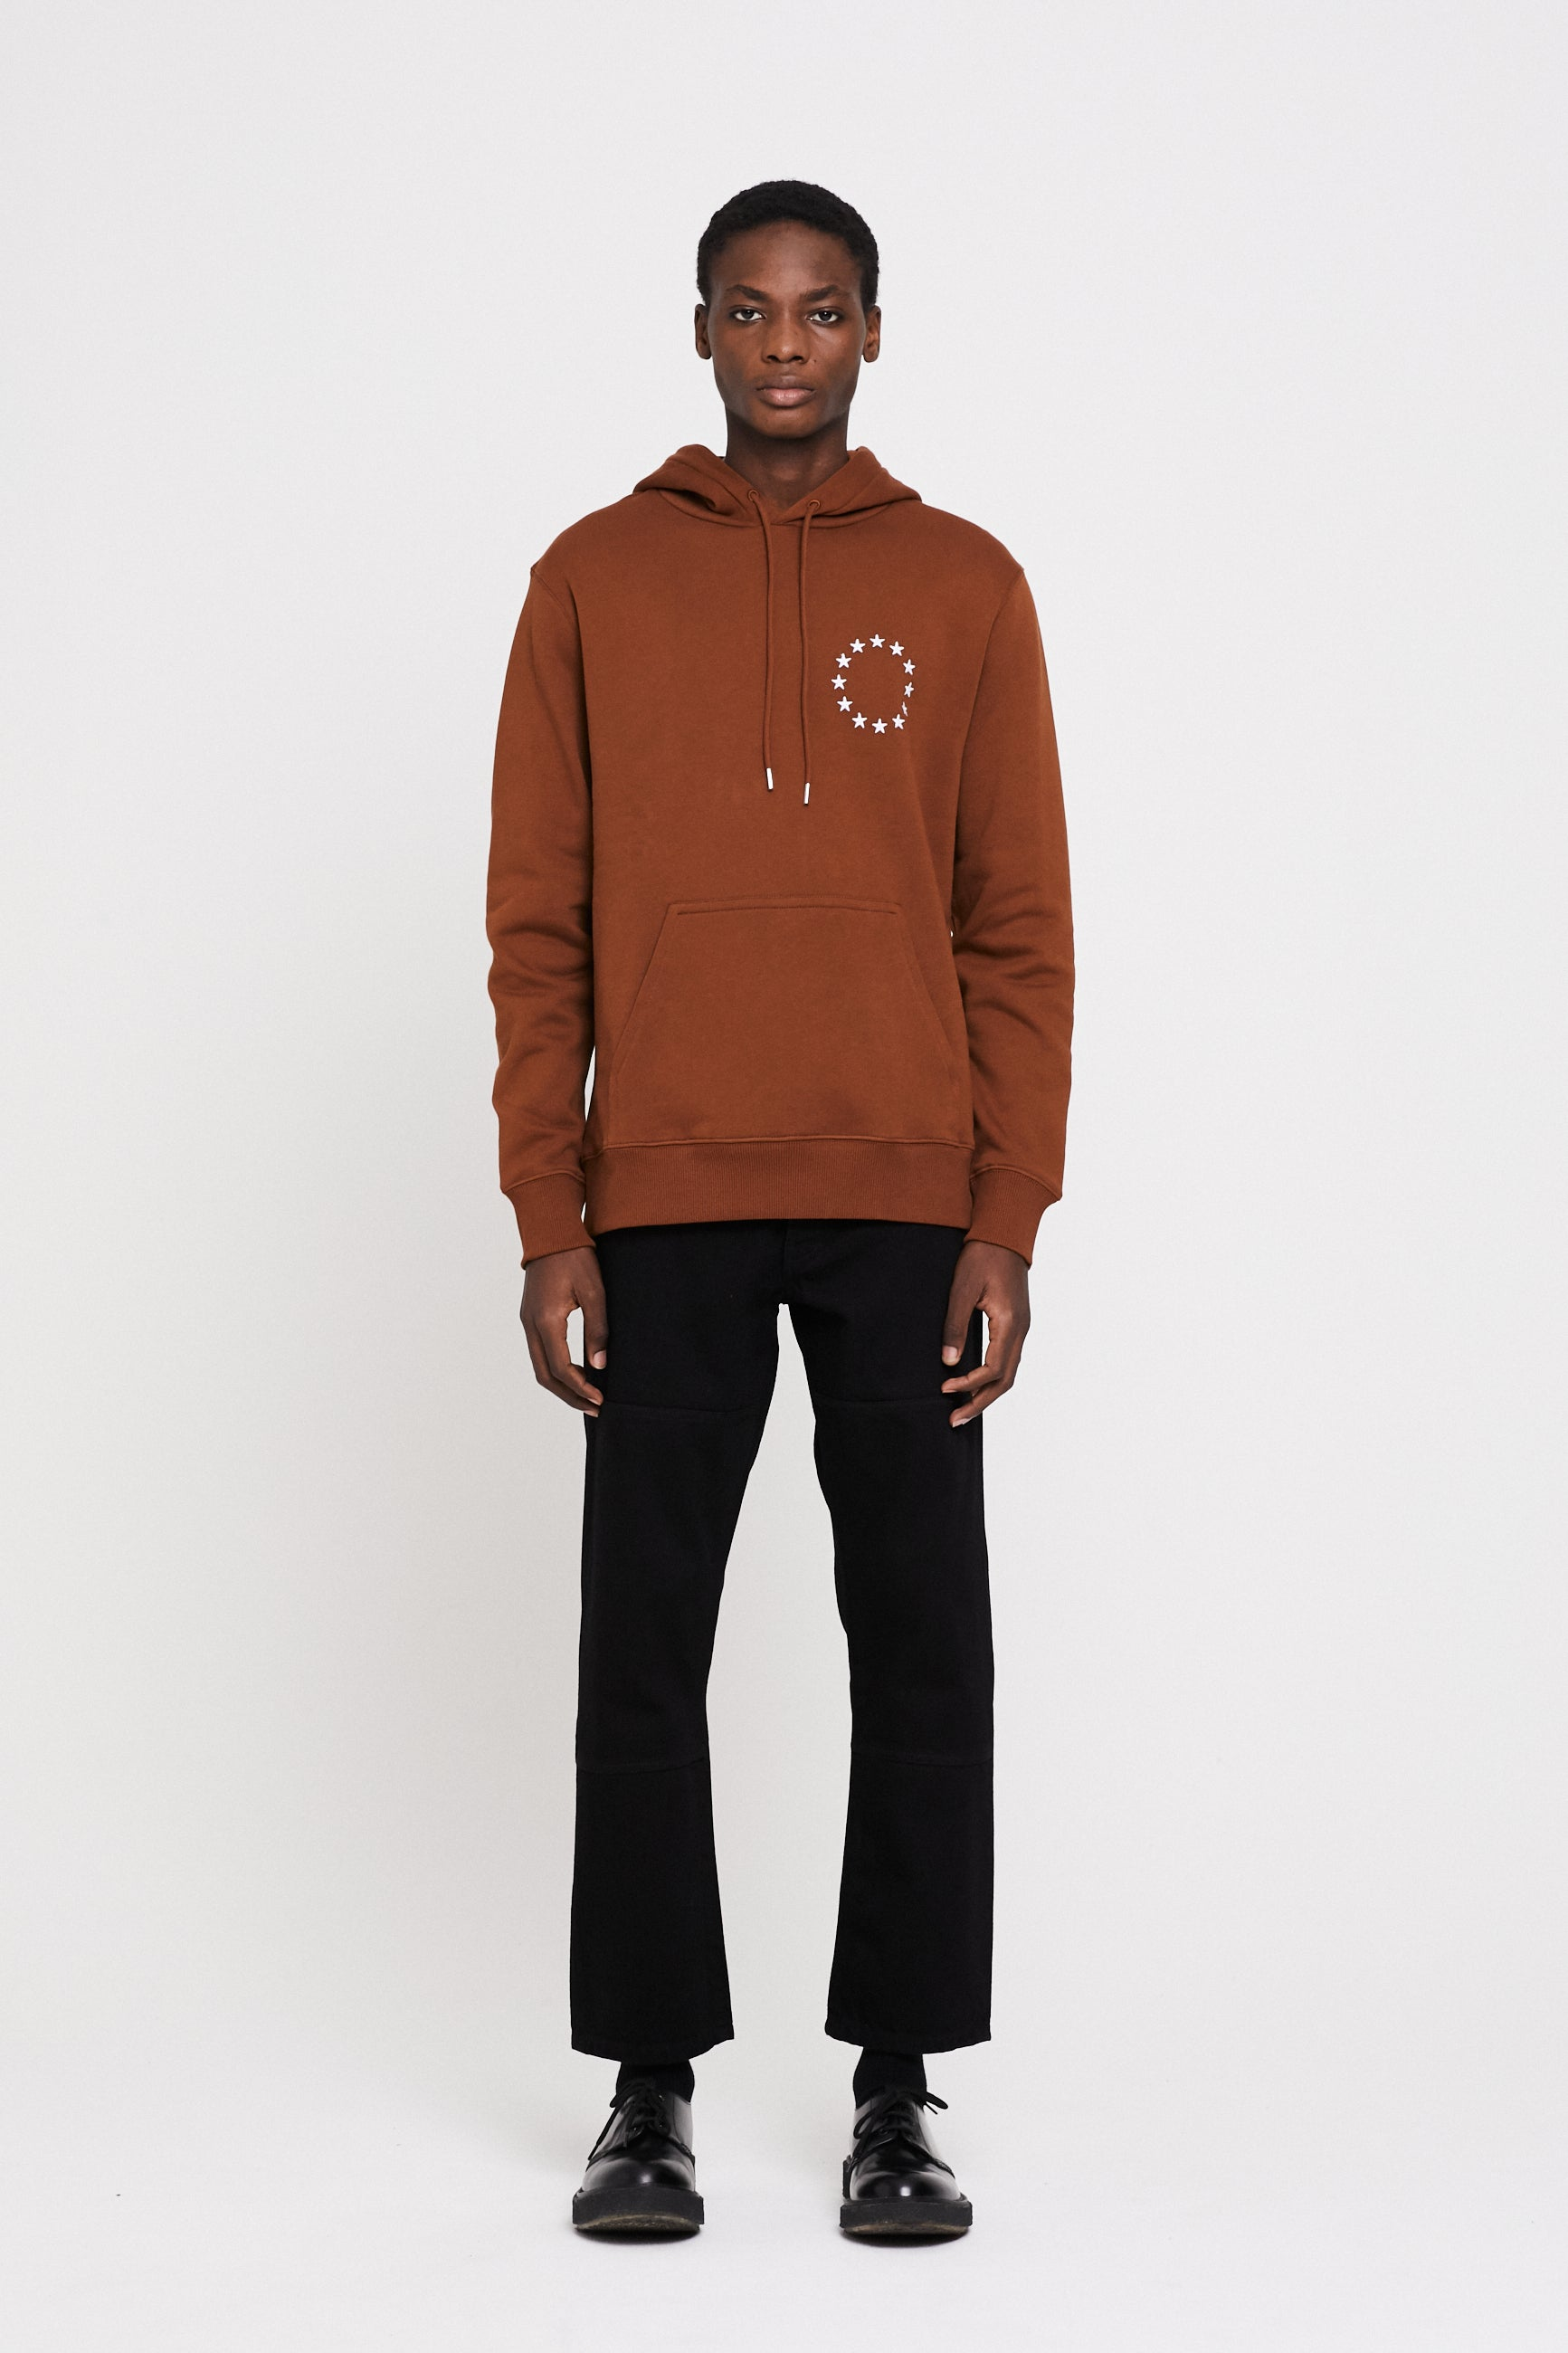 Études Klein Europa Brown White Sweatshirt 1